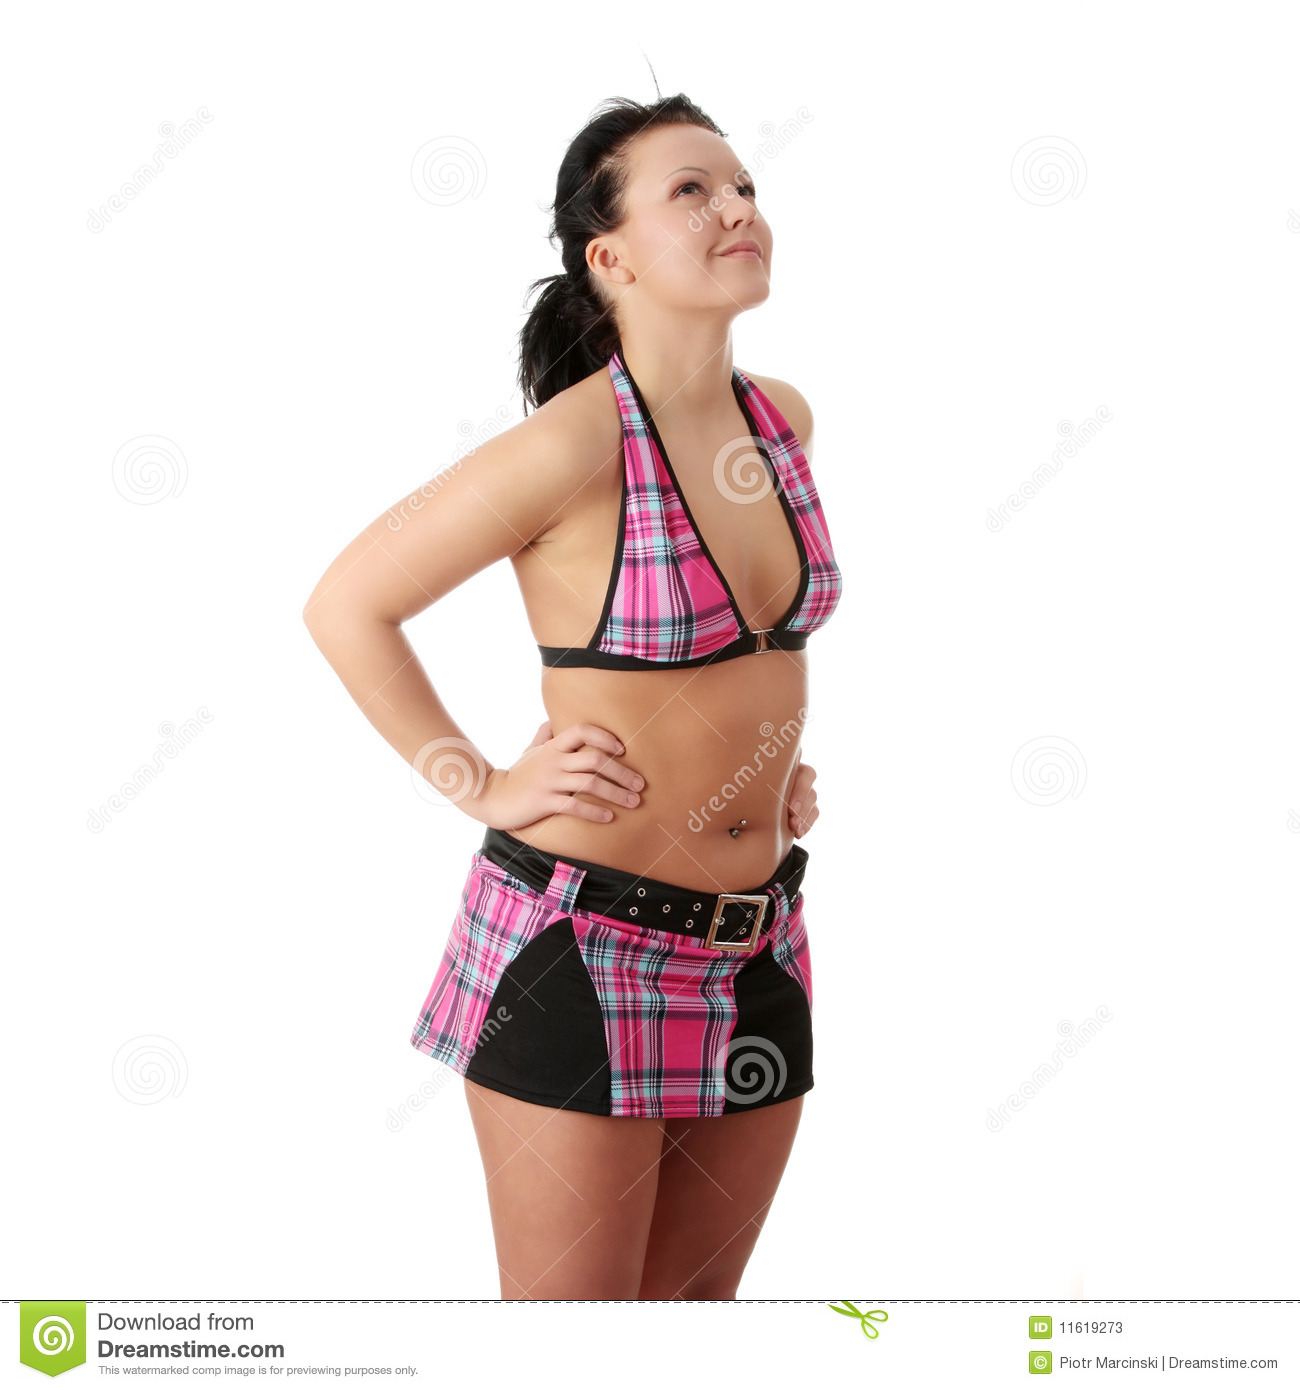 Beauty Contest Only for Overweight Women